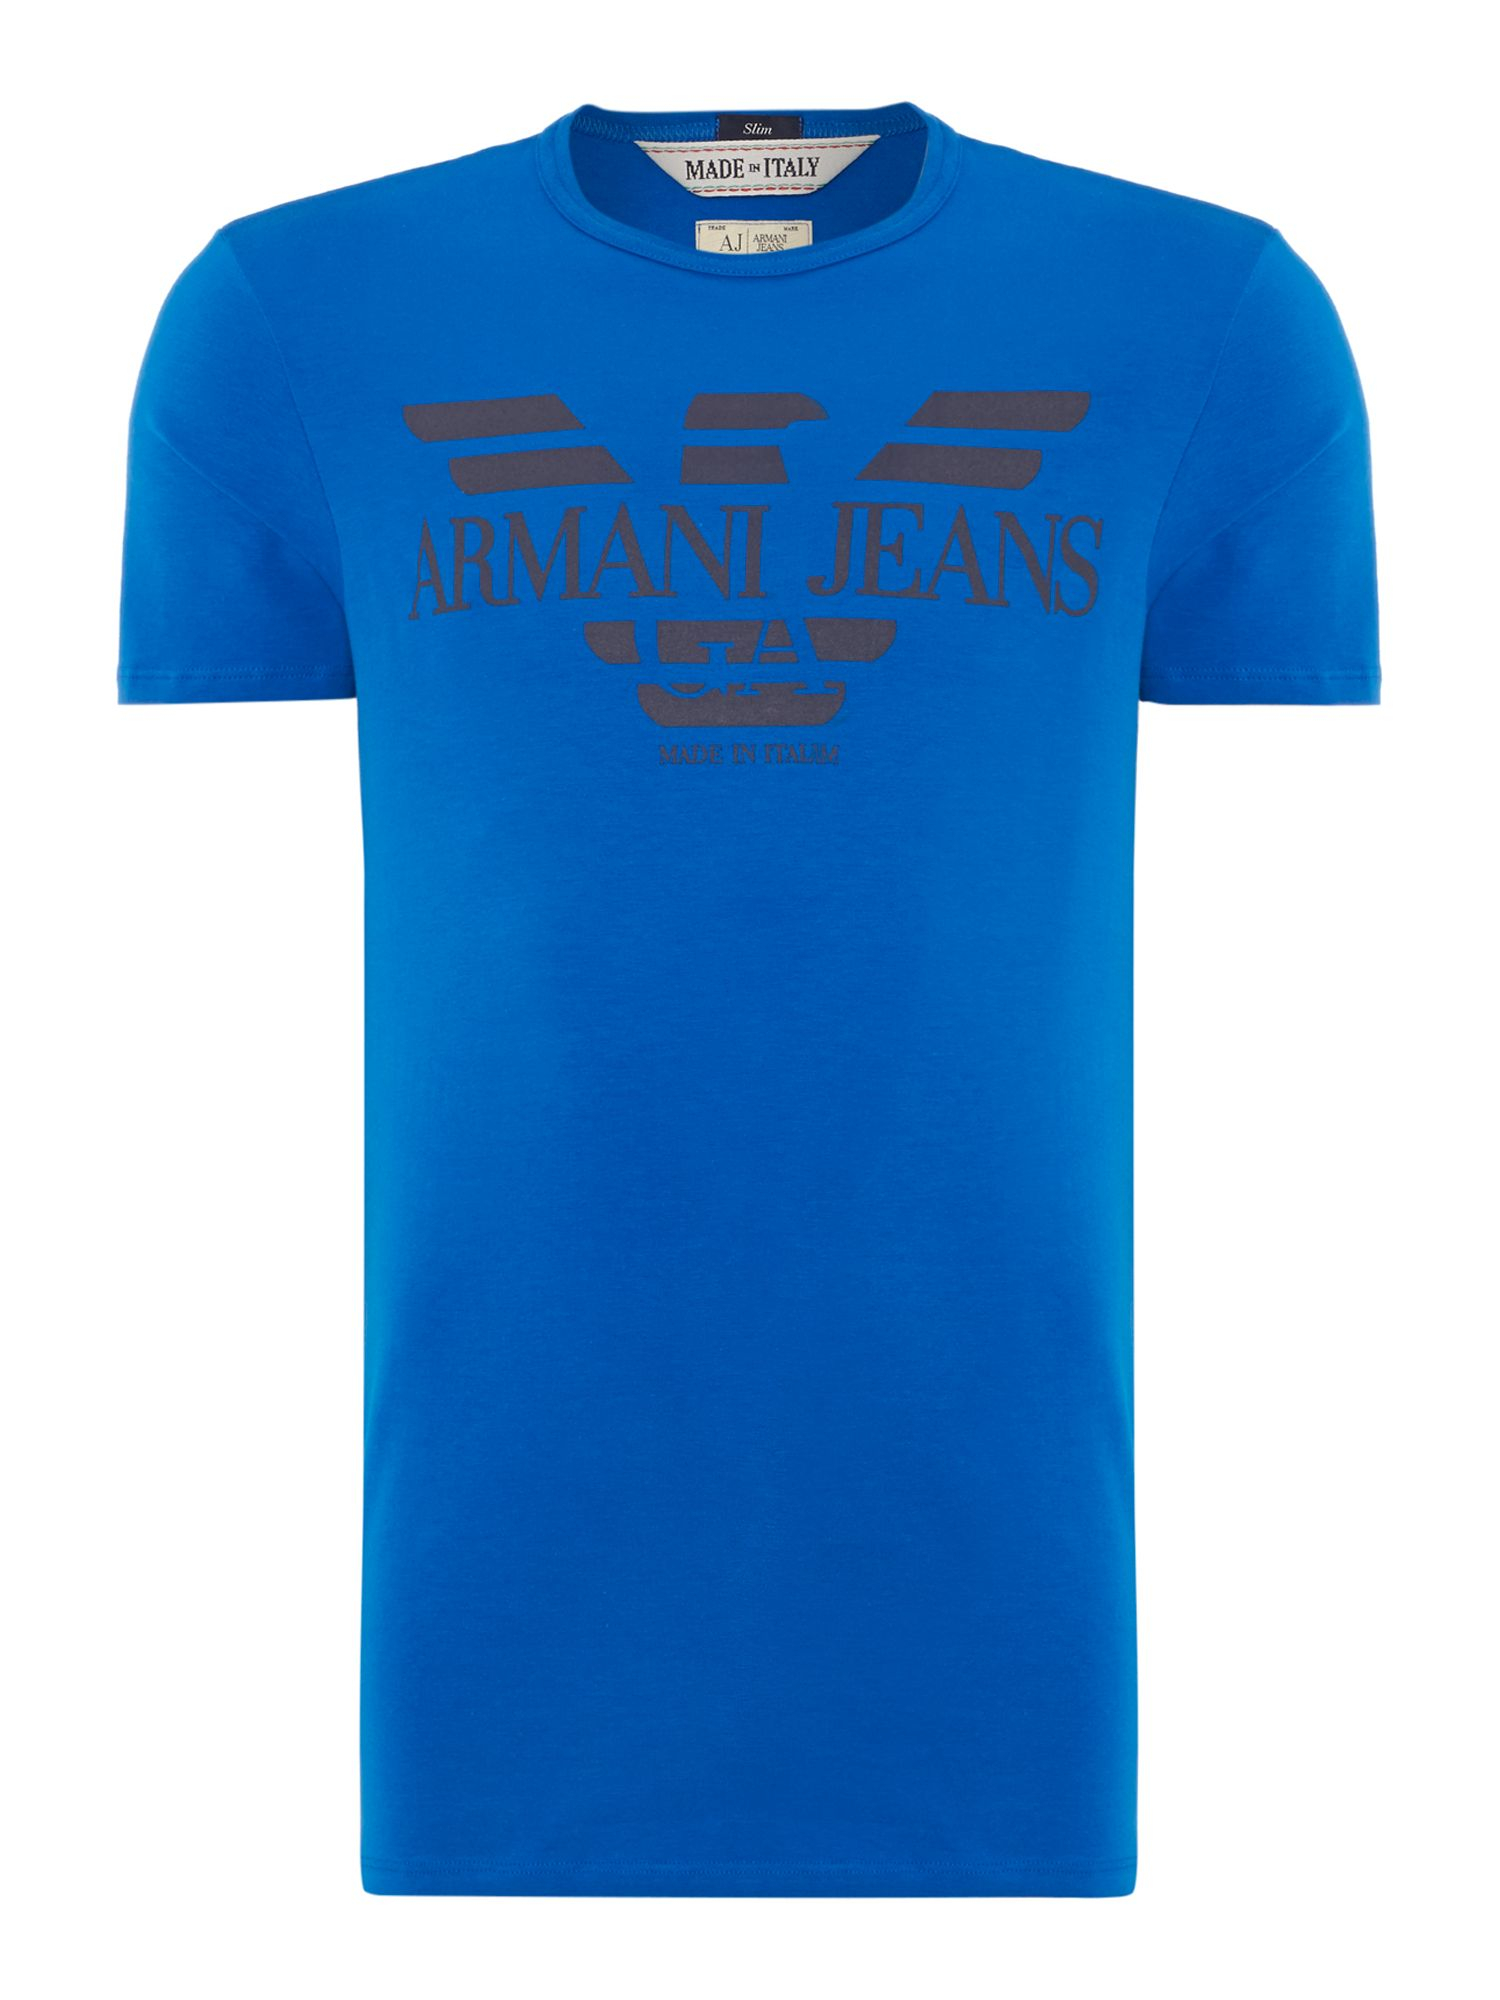 Lyst armani jeans made in italy logo t shirt in blue for men for Shirts made in italy